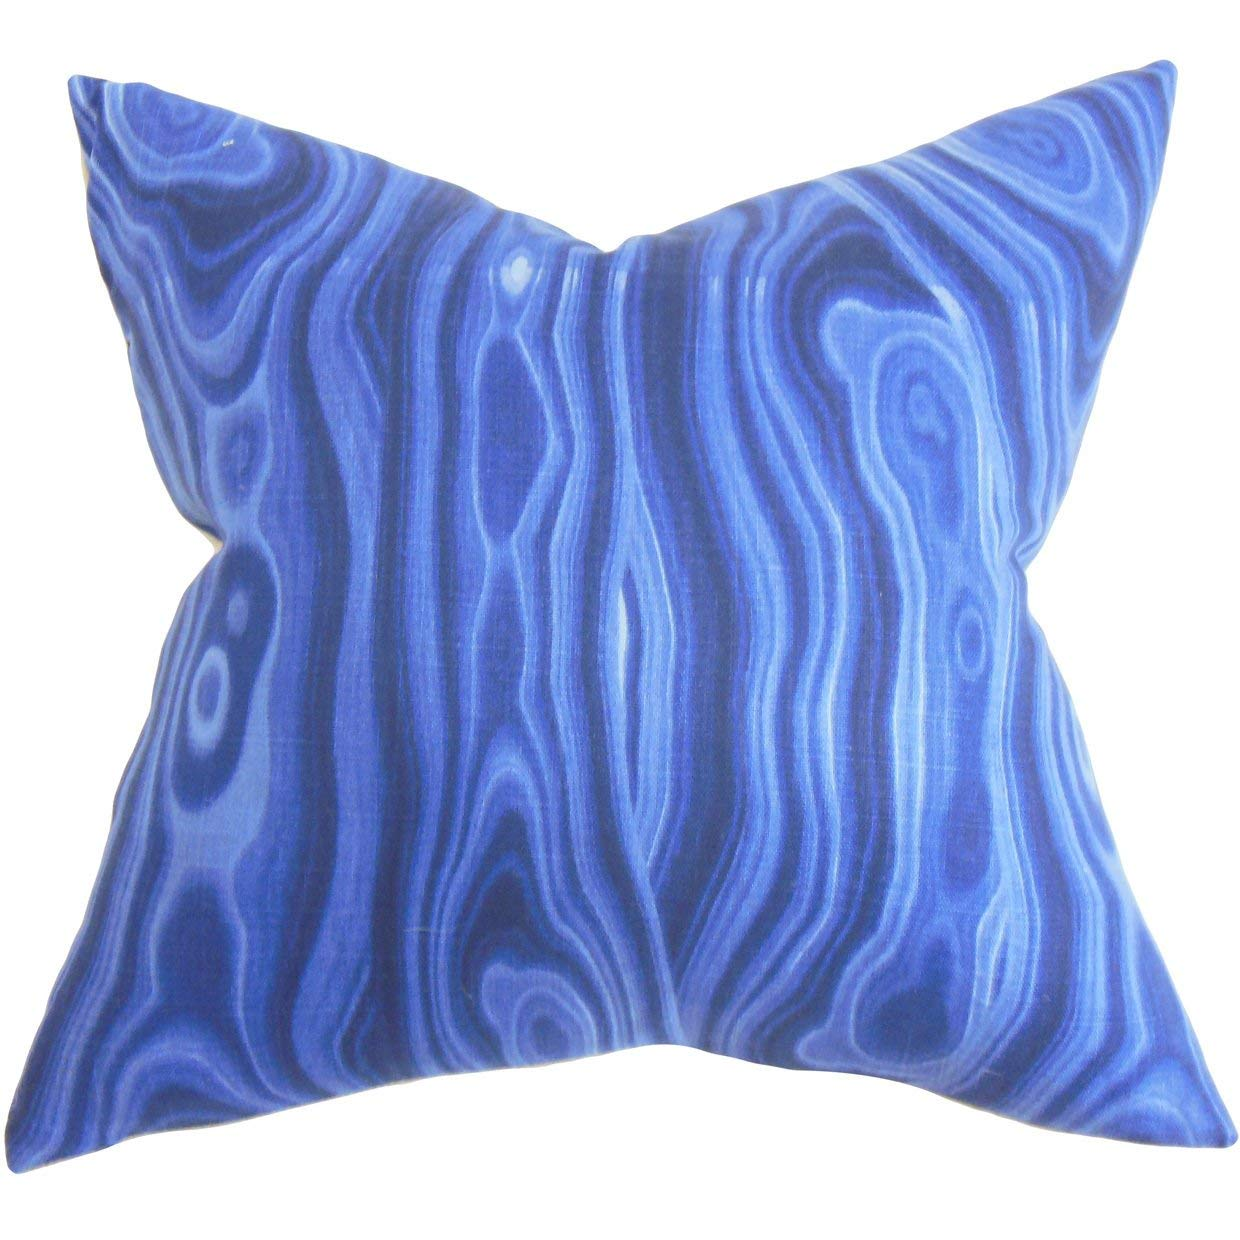 The Pillow Collection Zoia Geometric Blue Down Filled Throw Pillow